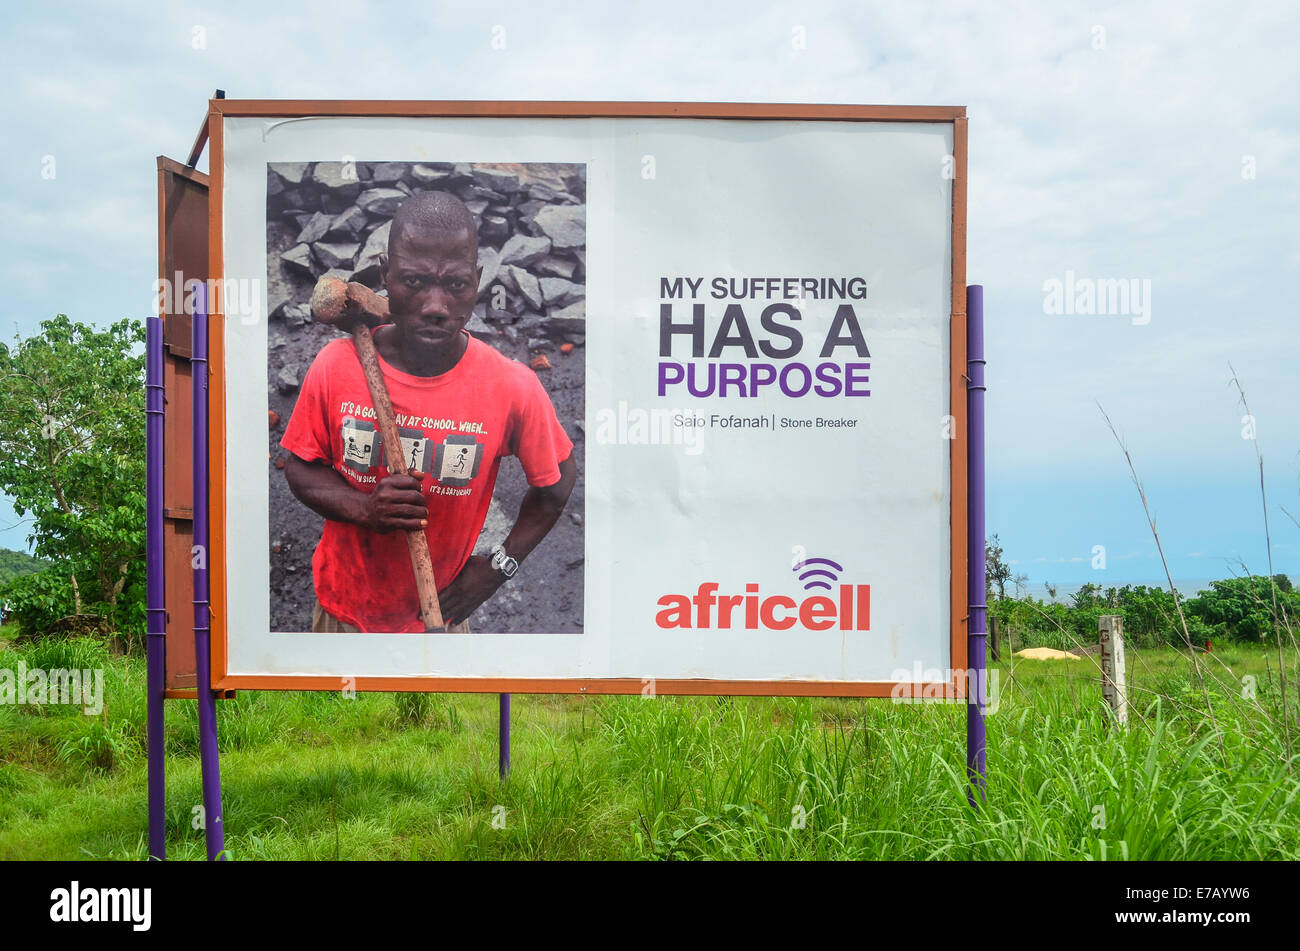 Africell (telephone operator) ad featuring a stone crusher, Sierra Leone - Stock Image